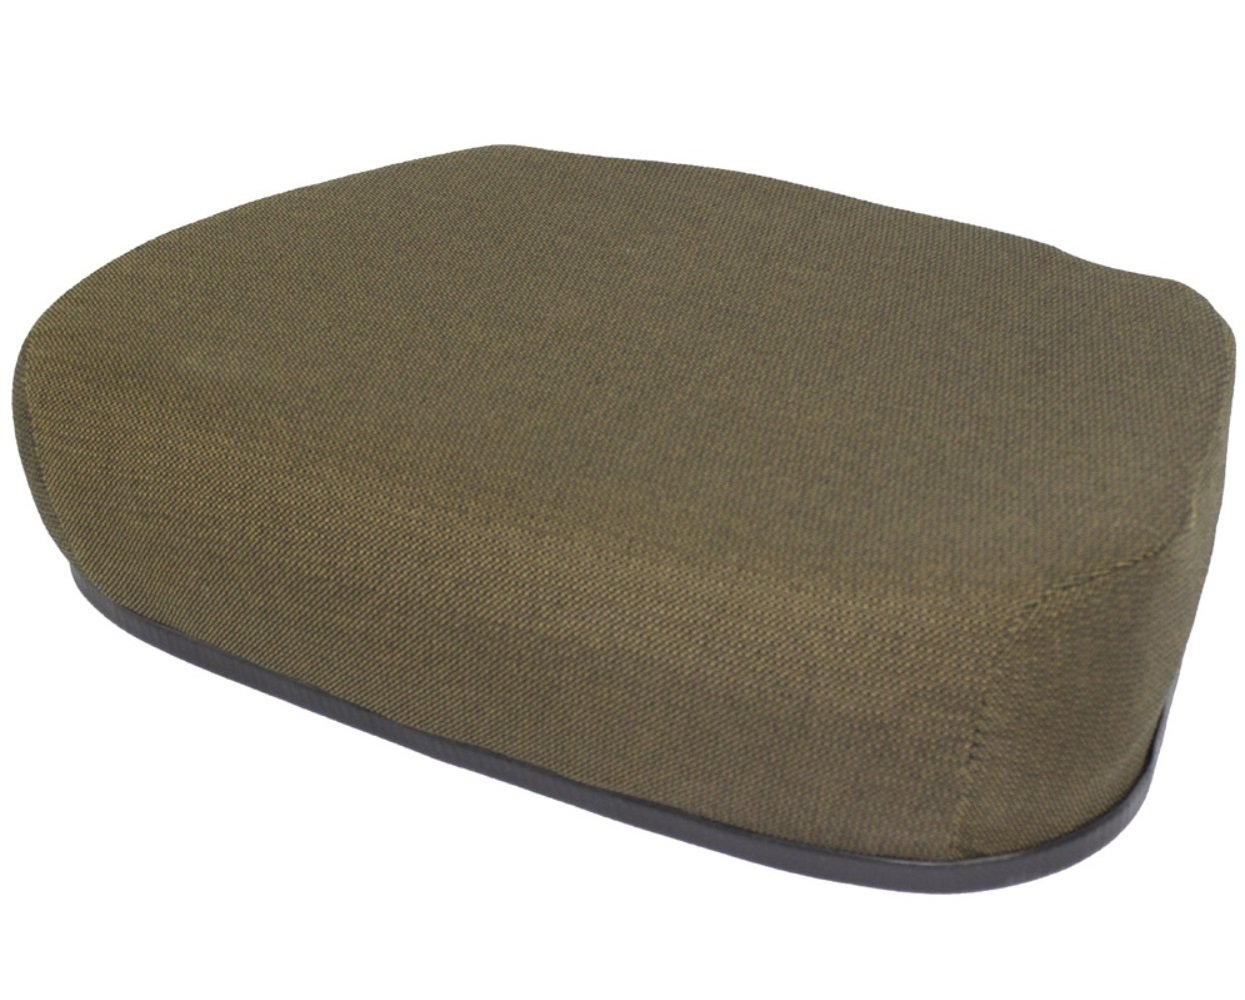 AR82944 New Hydraulic Suspension Seat Cushion made to fit John Deere Tractors...